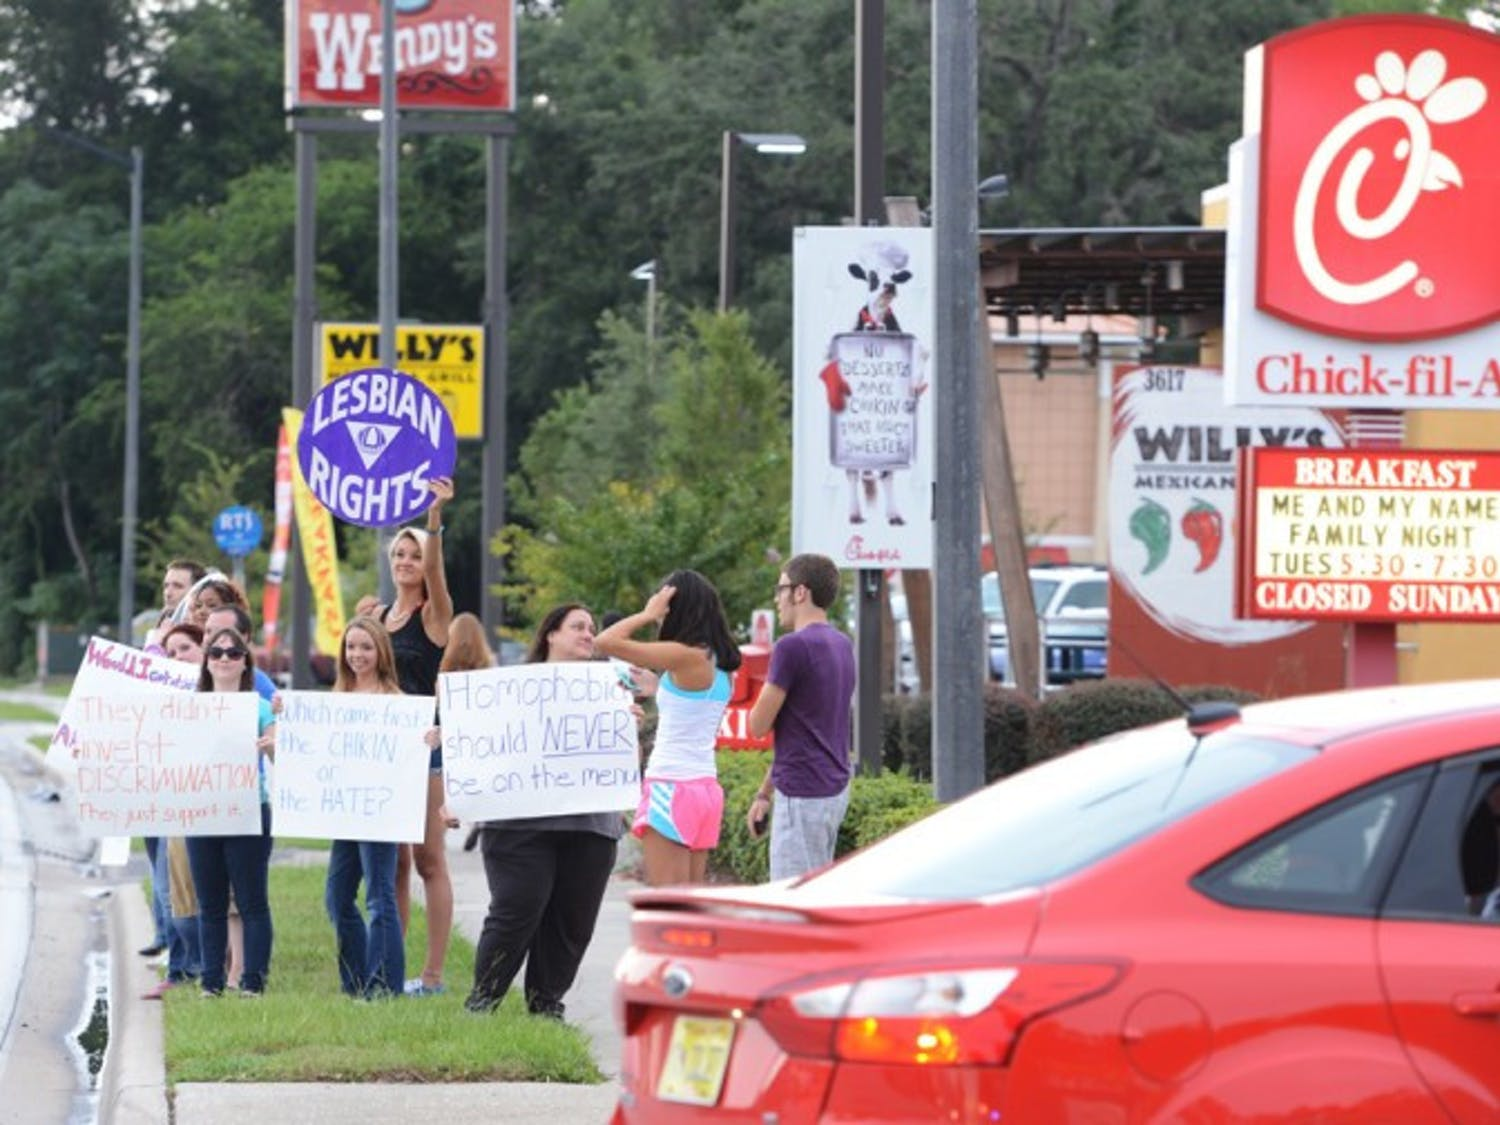 Protesters supporting gay rights stand along Southwest Archer Road in front of Chick-fil-A. Thousands of people flocked to Chick-fil-A to support the restaurant chain's traditional stance on marriage rights.